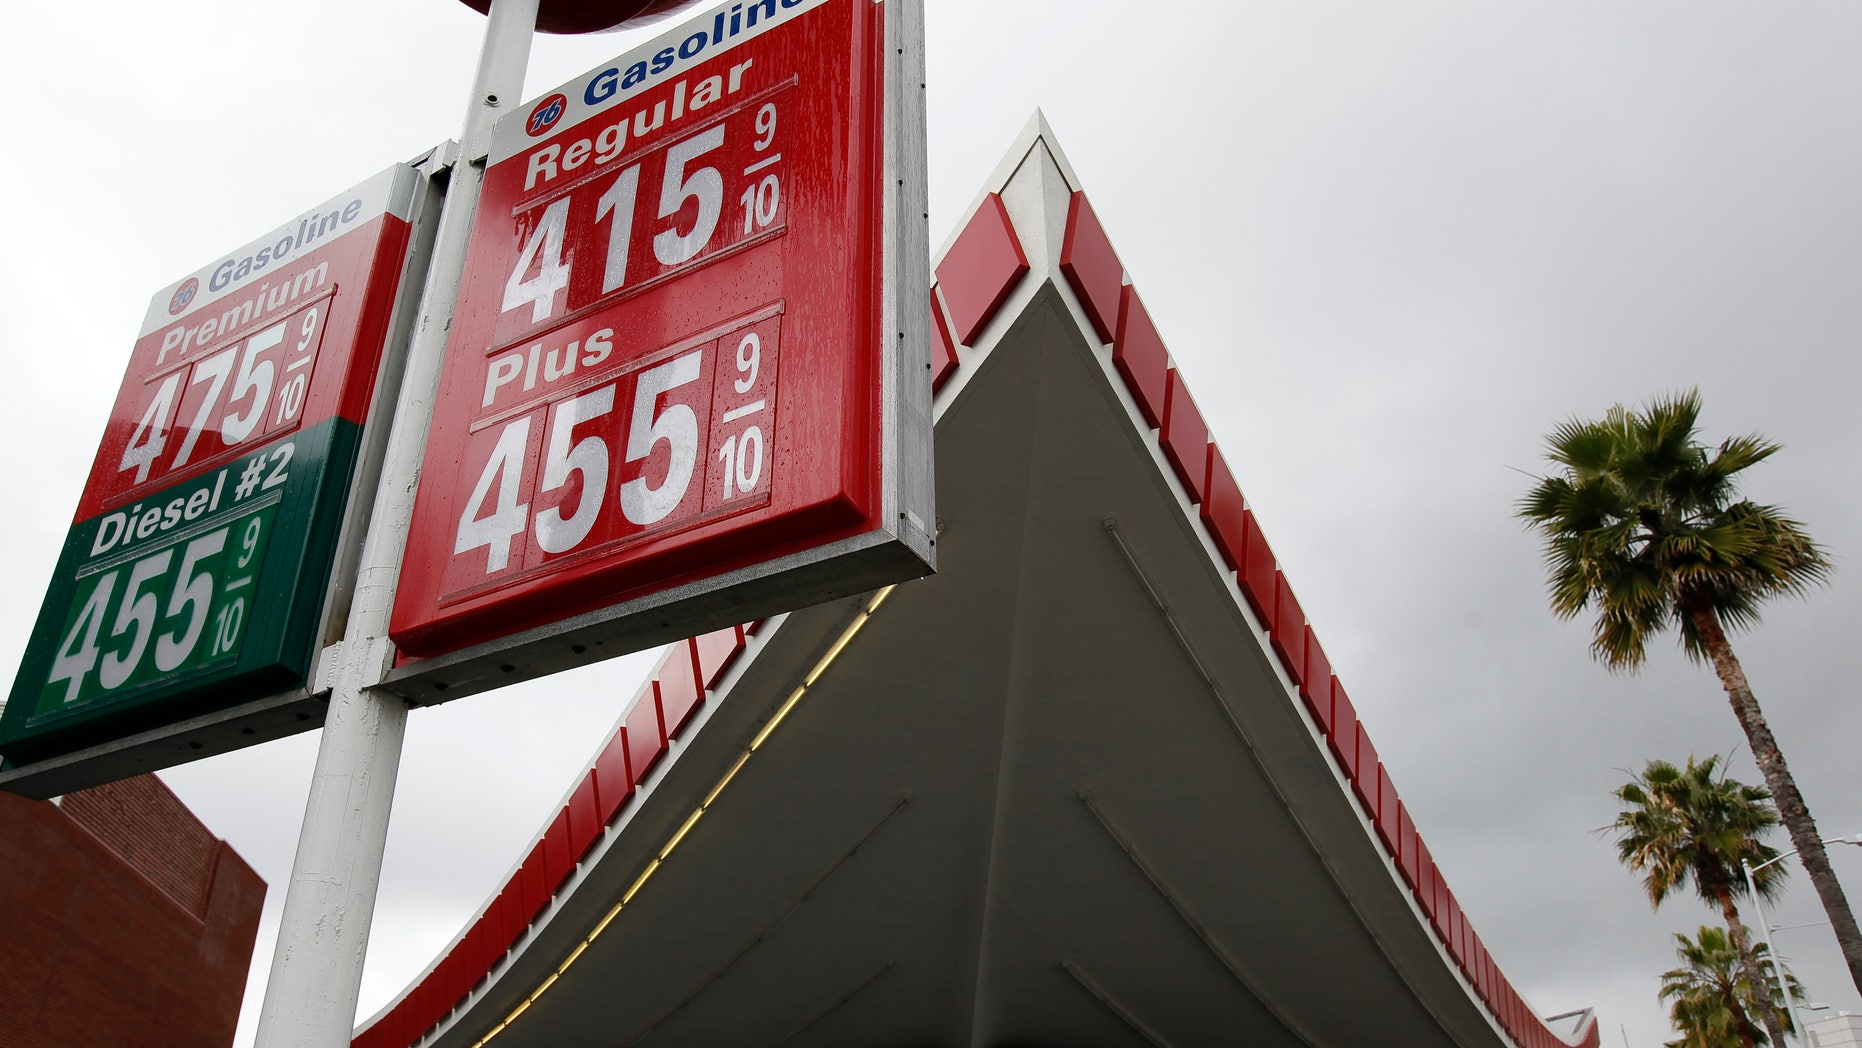 Feb. 25: Gas prices passed $4 a gallon in Beverly Hills, Calif. Oil prices are subsiding after reports  of some Libyan ports reopening to tankers and Saudi Arabia boosting exports.